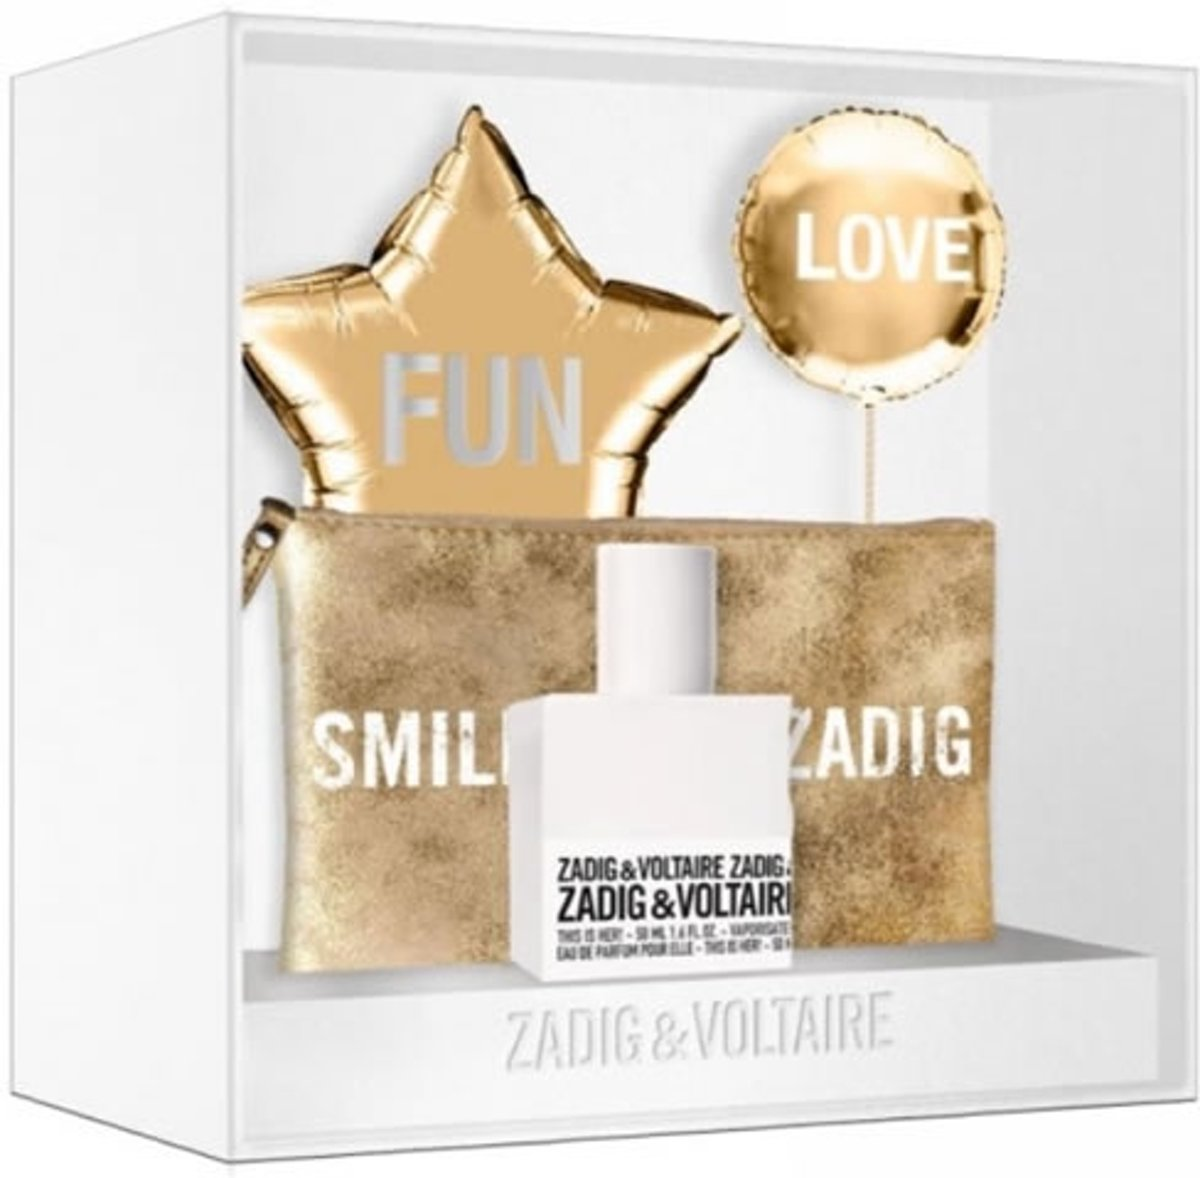 Zadig & Voltaire Zadig Et Voltaire This Is Her! Eau De Perfume Spray 50ml Set 2 Pieces 2018